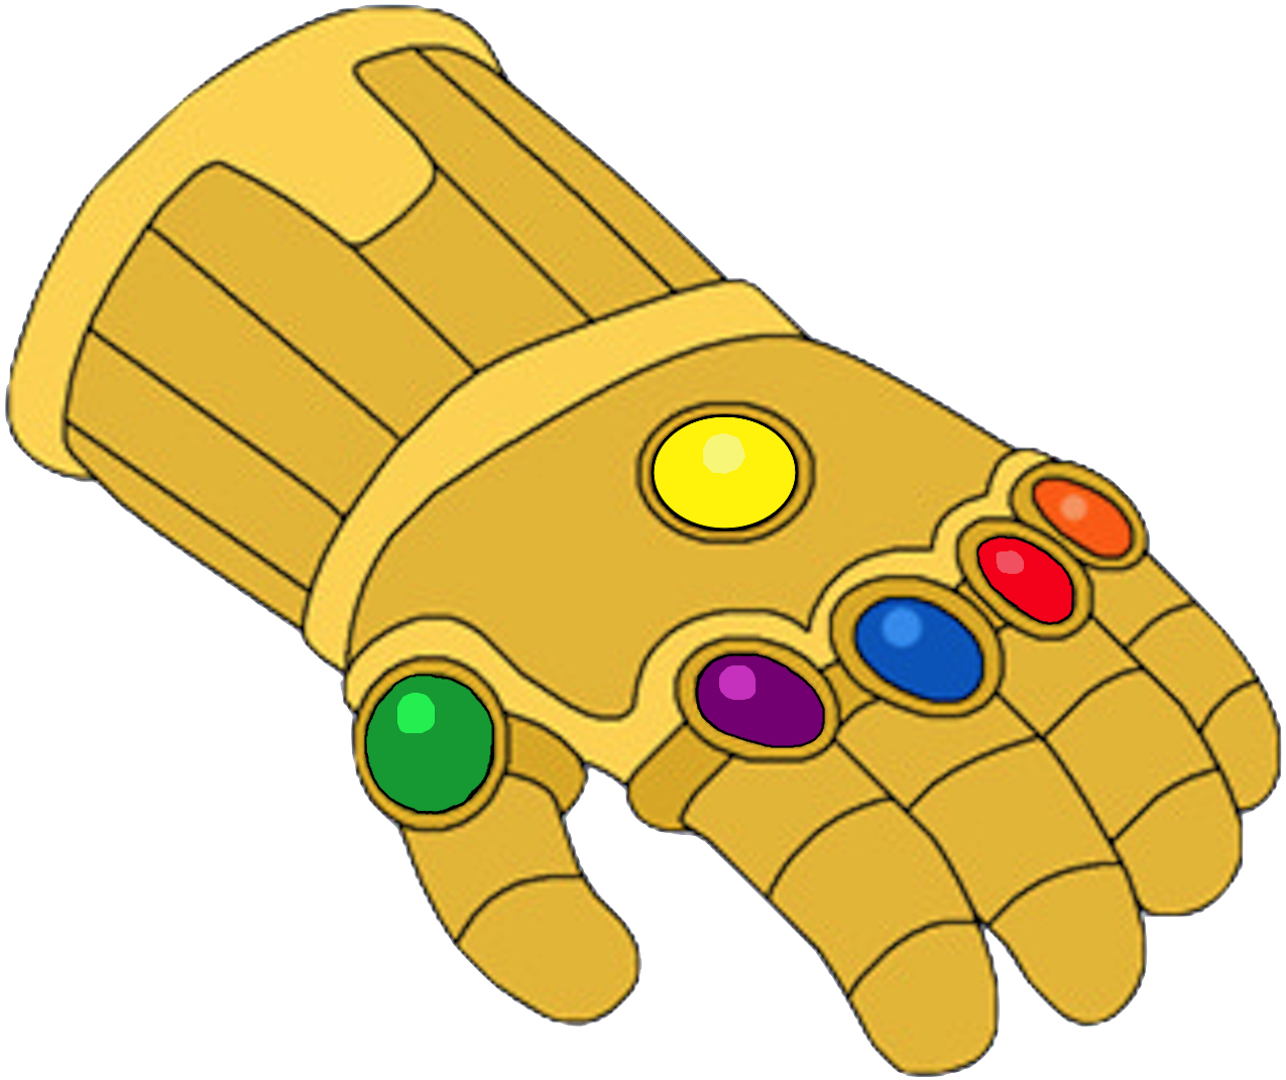 Thanos clipart infinity gauntlet. Yuna s princess adventure